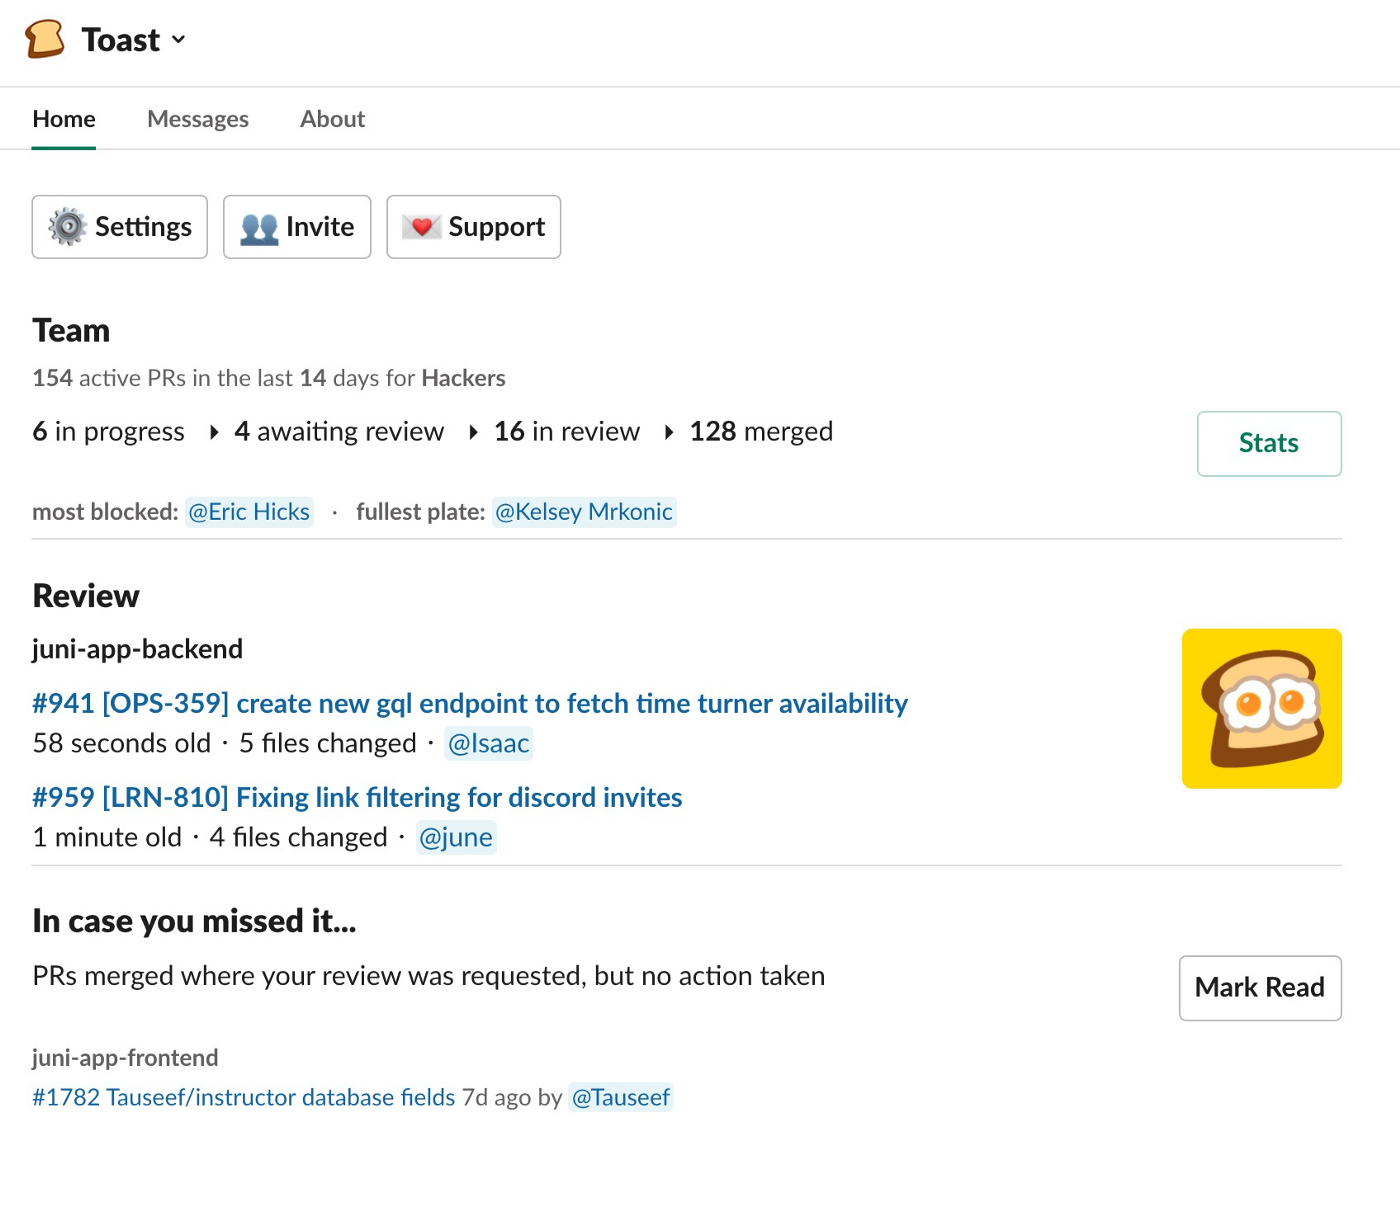 A screenshot of the Toast application